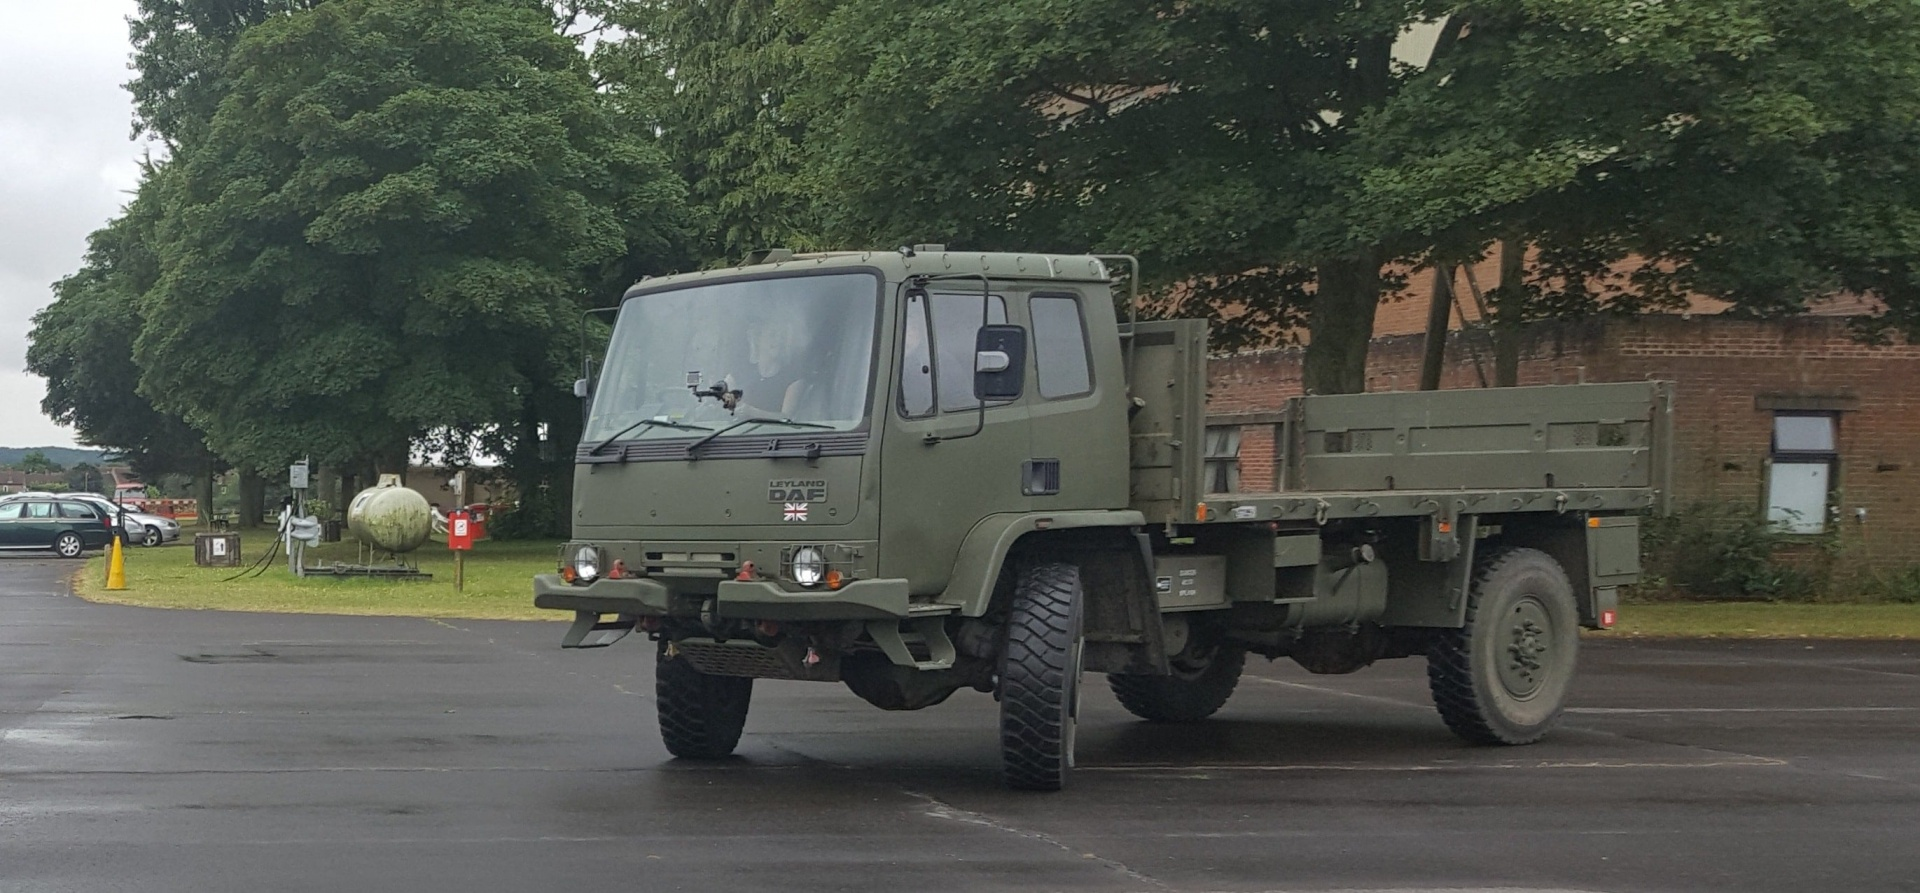 Leyland DAF 4x4 Army Truck Off Road Driving Day - Oxford-1